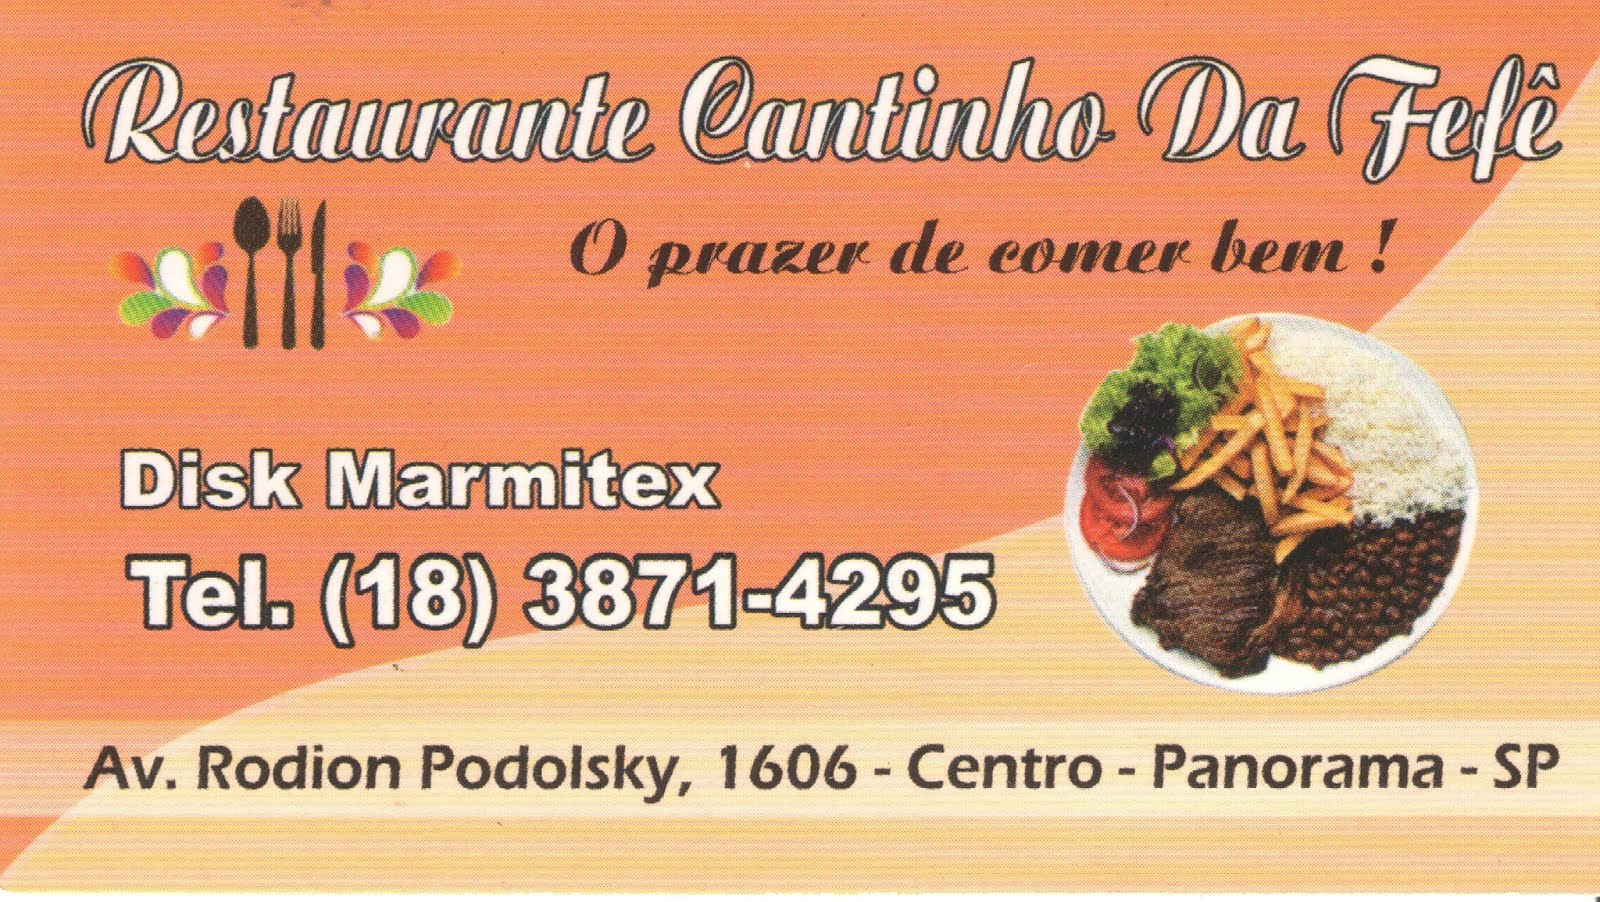 ANTECIPE SUA MARMITEX, LIGUE!!